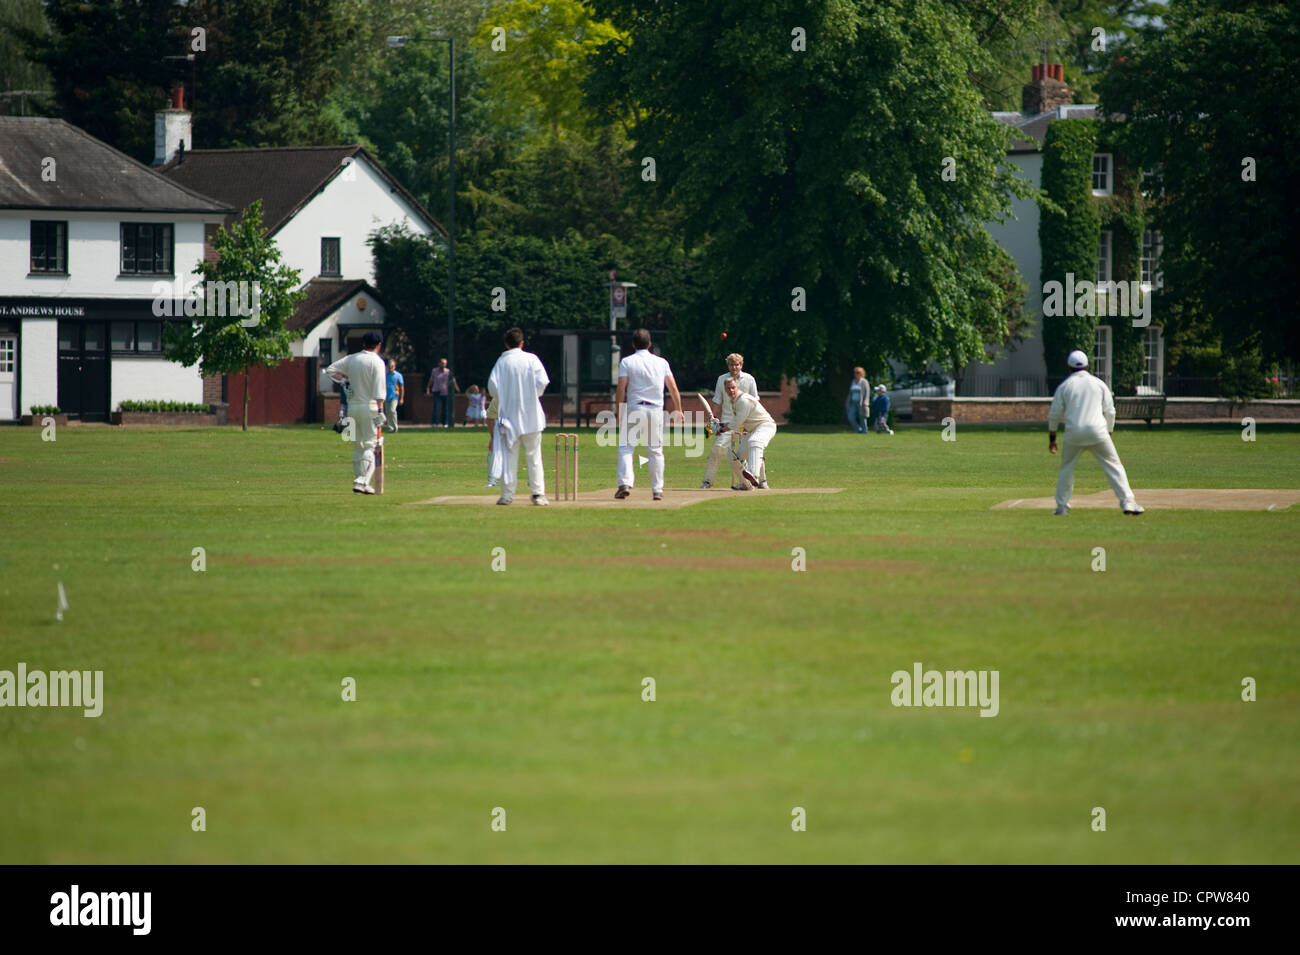 Village cricket match at Ham Common in the London Borough of Richmond upon Thames, England, UK Stock Photo